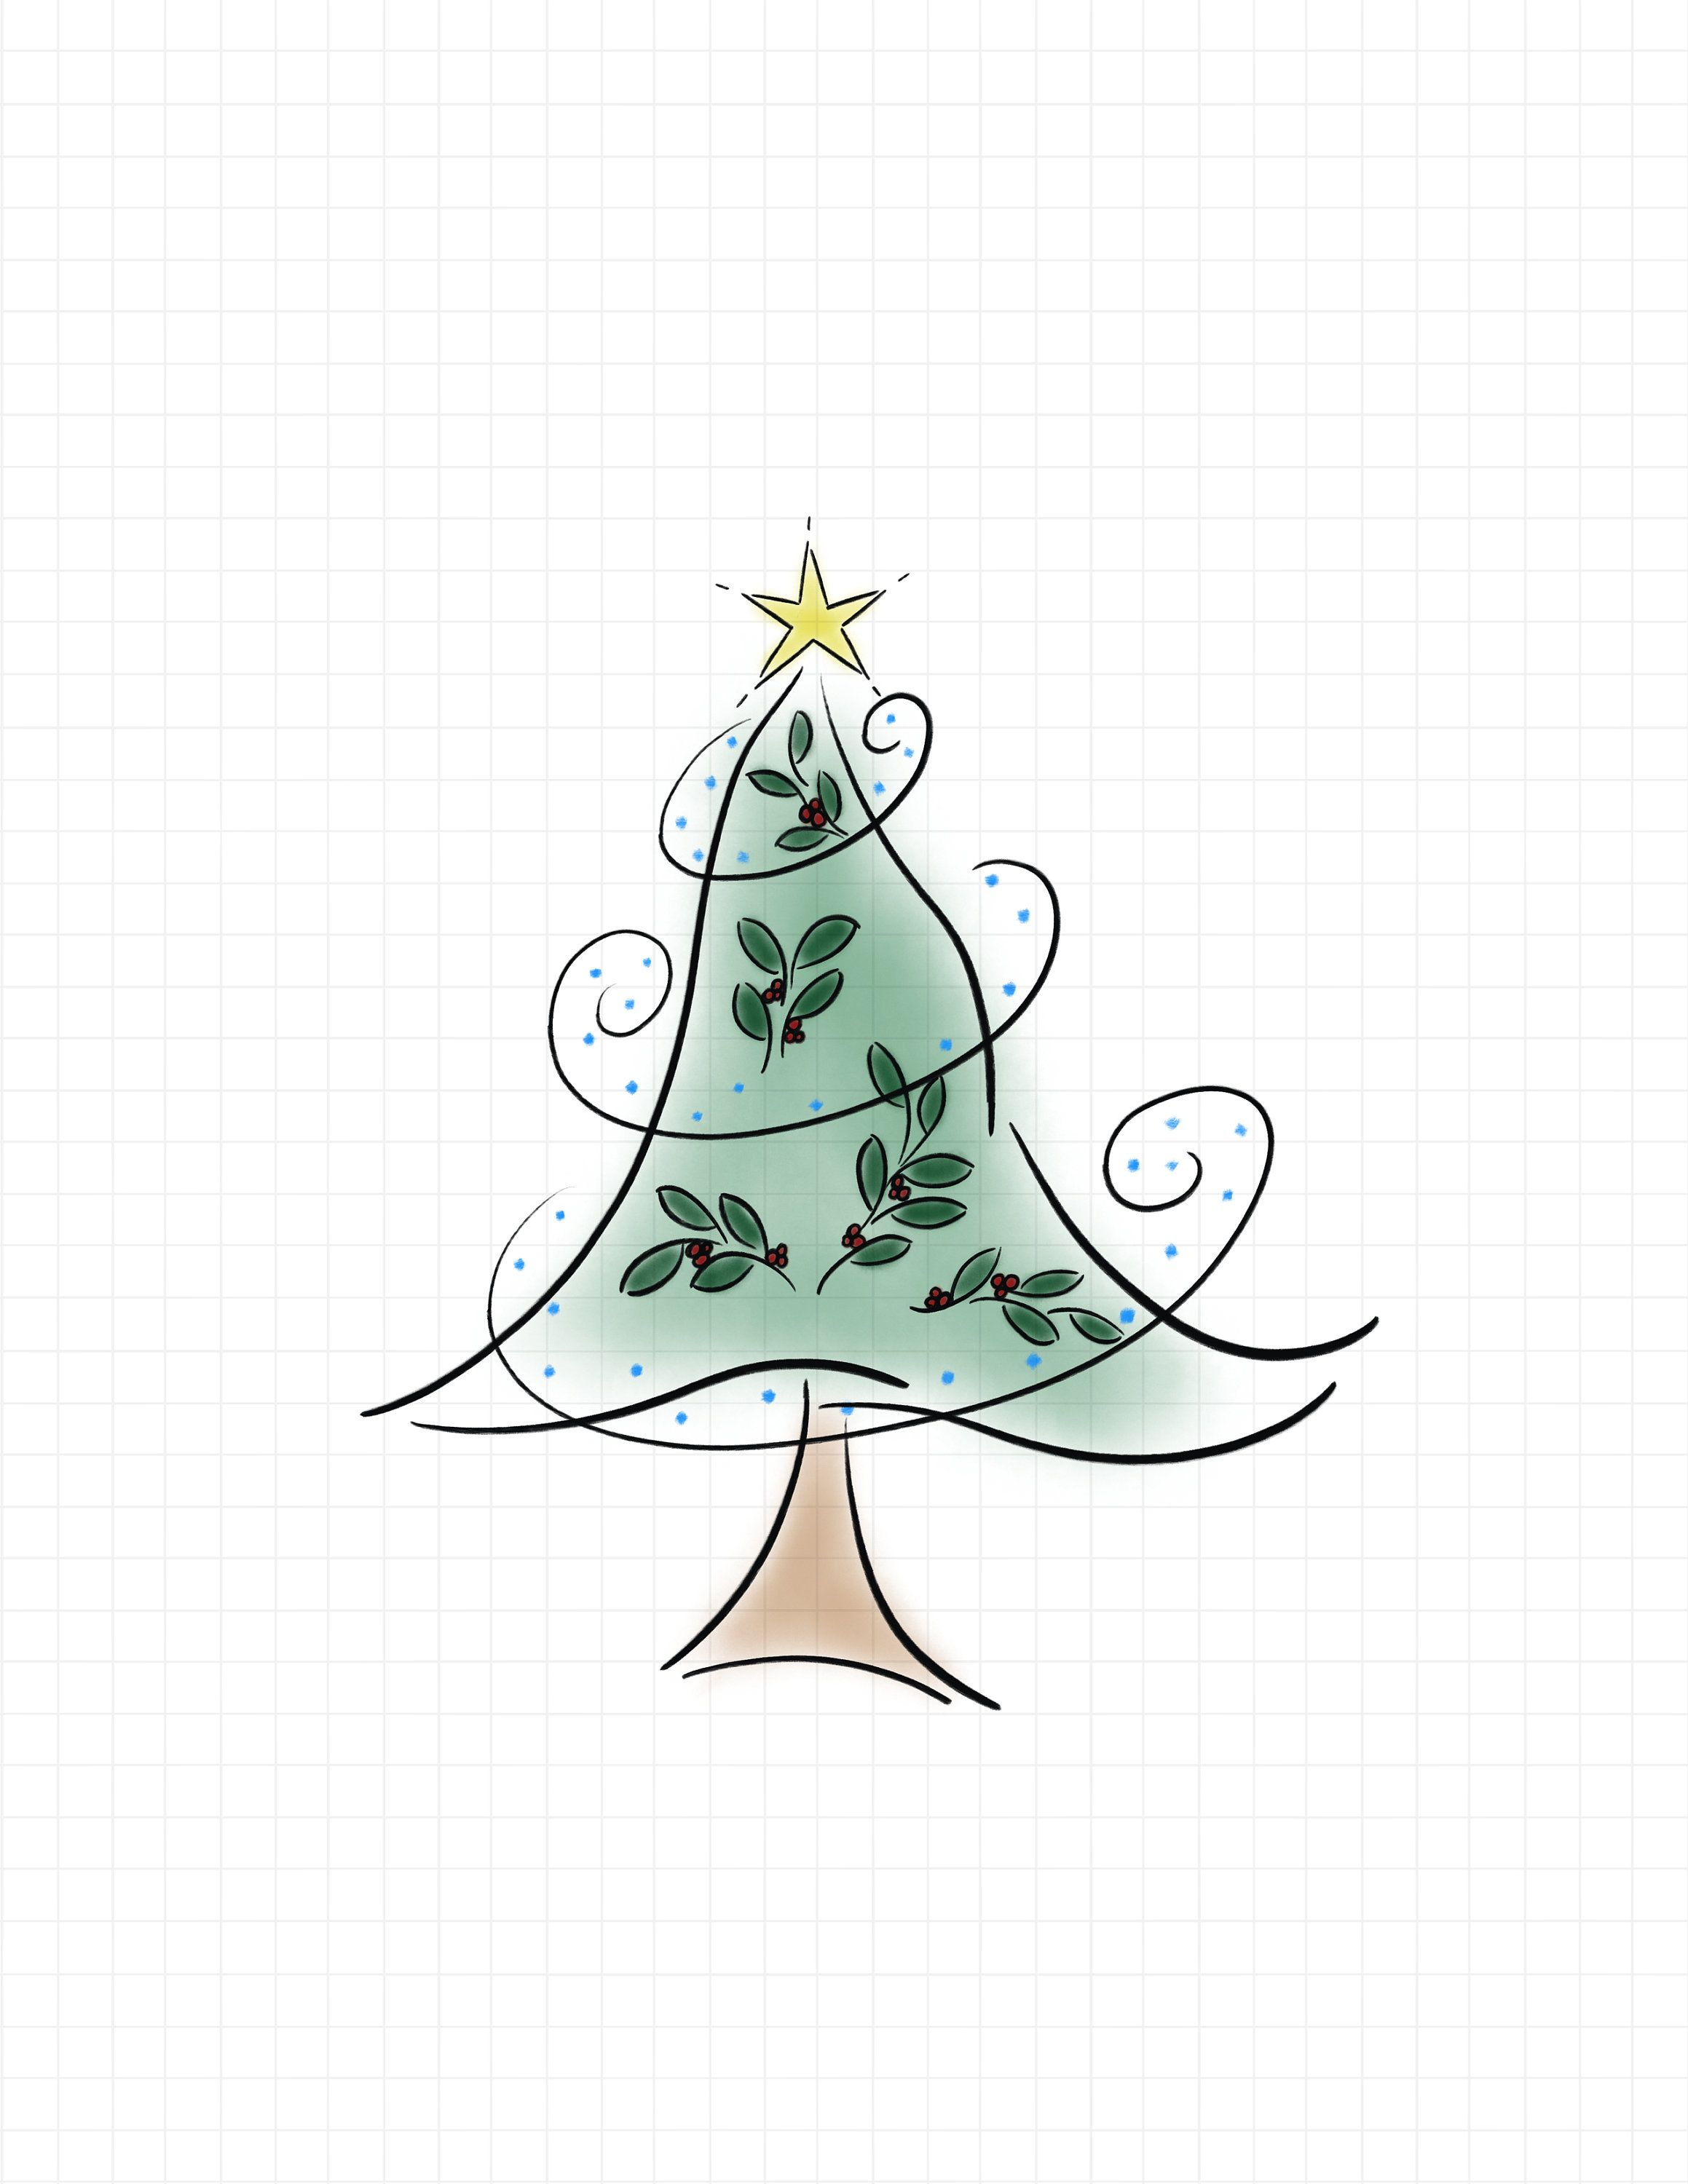 Christmas Tree Clipart Sublimation Graphic Whimsical Etsy In 2020 Christmas Tree Clipart Christmas Tree Drawing Whimsical Christmas Trees